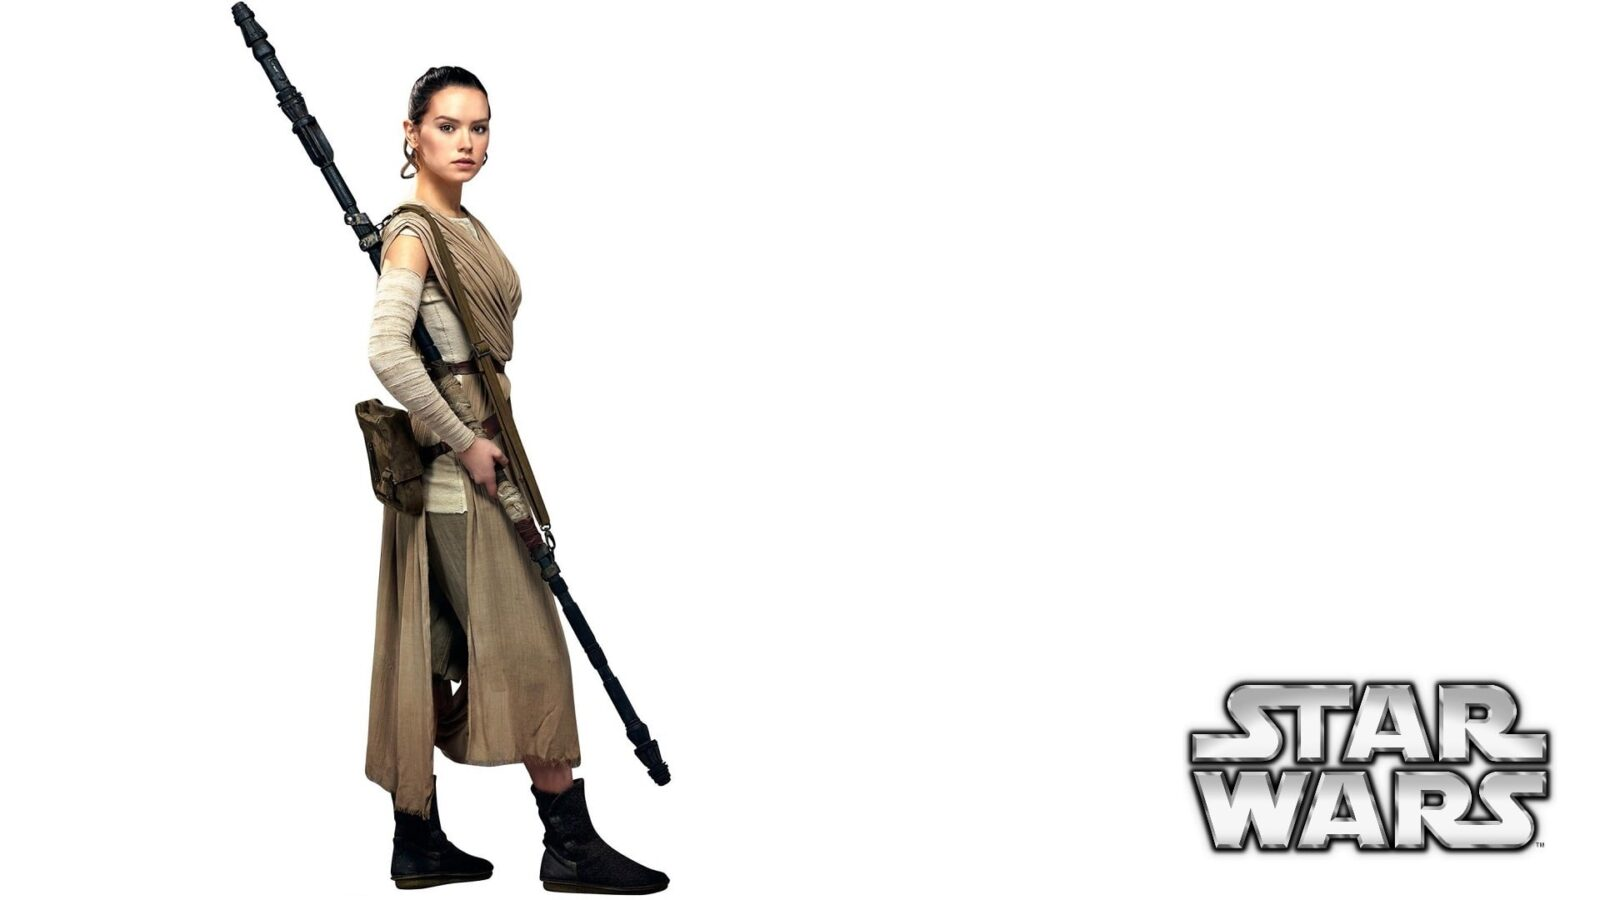 Image of Daisy Ridley Star Wars